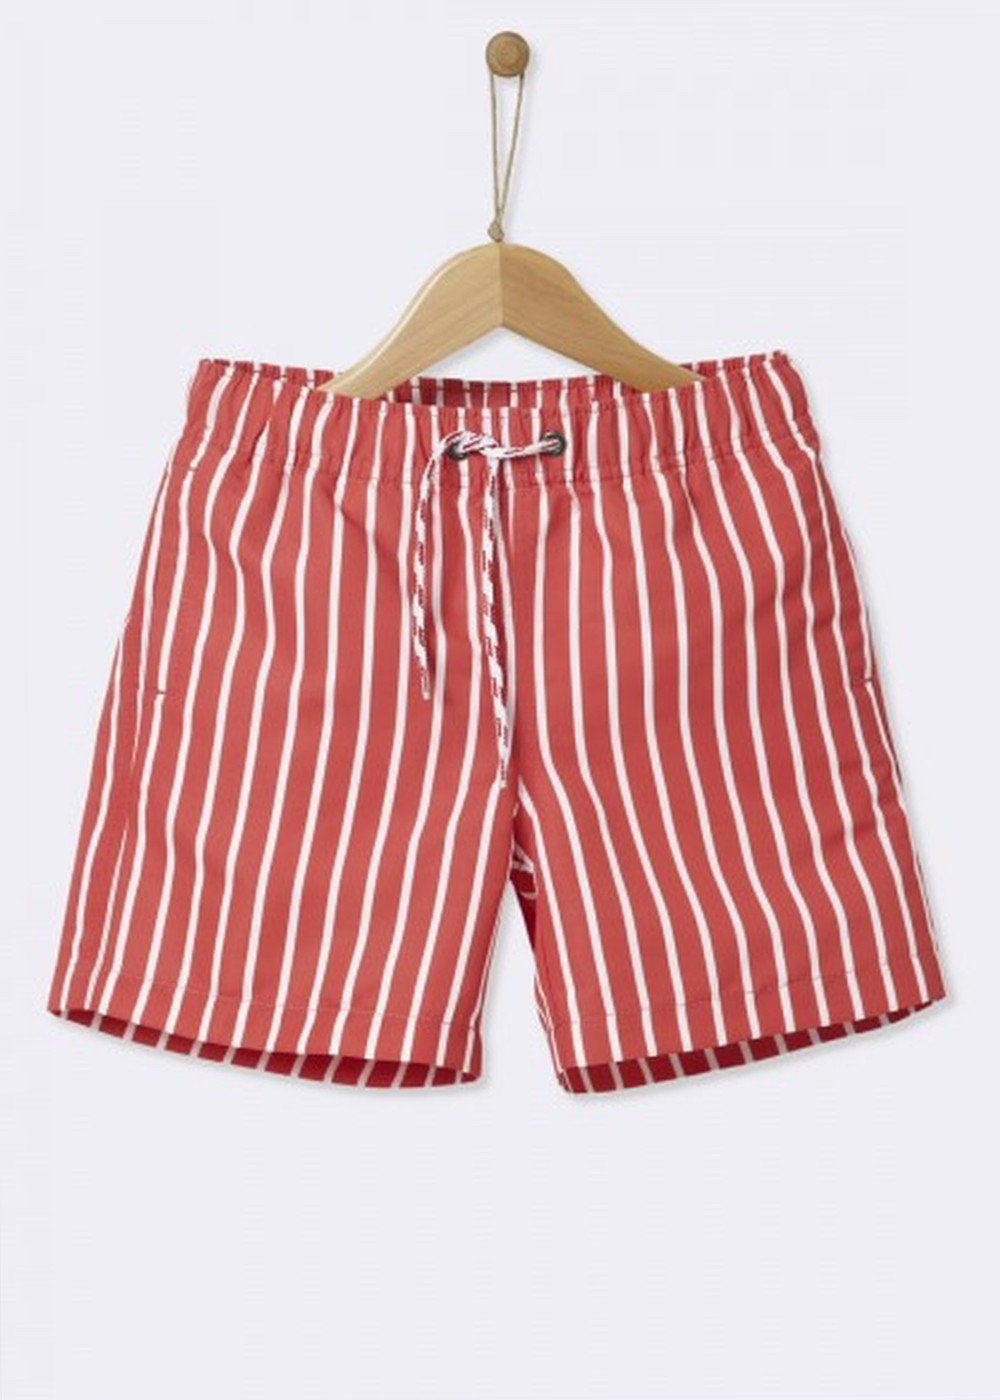 Red & White Shorts Cyrillus - 6 Years - Short